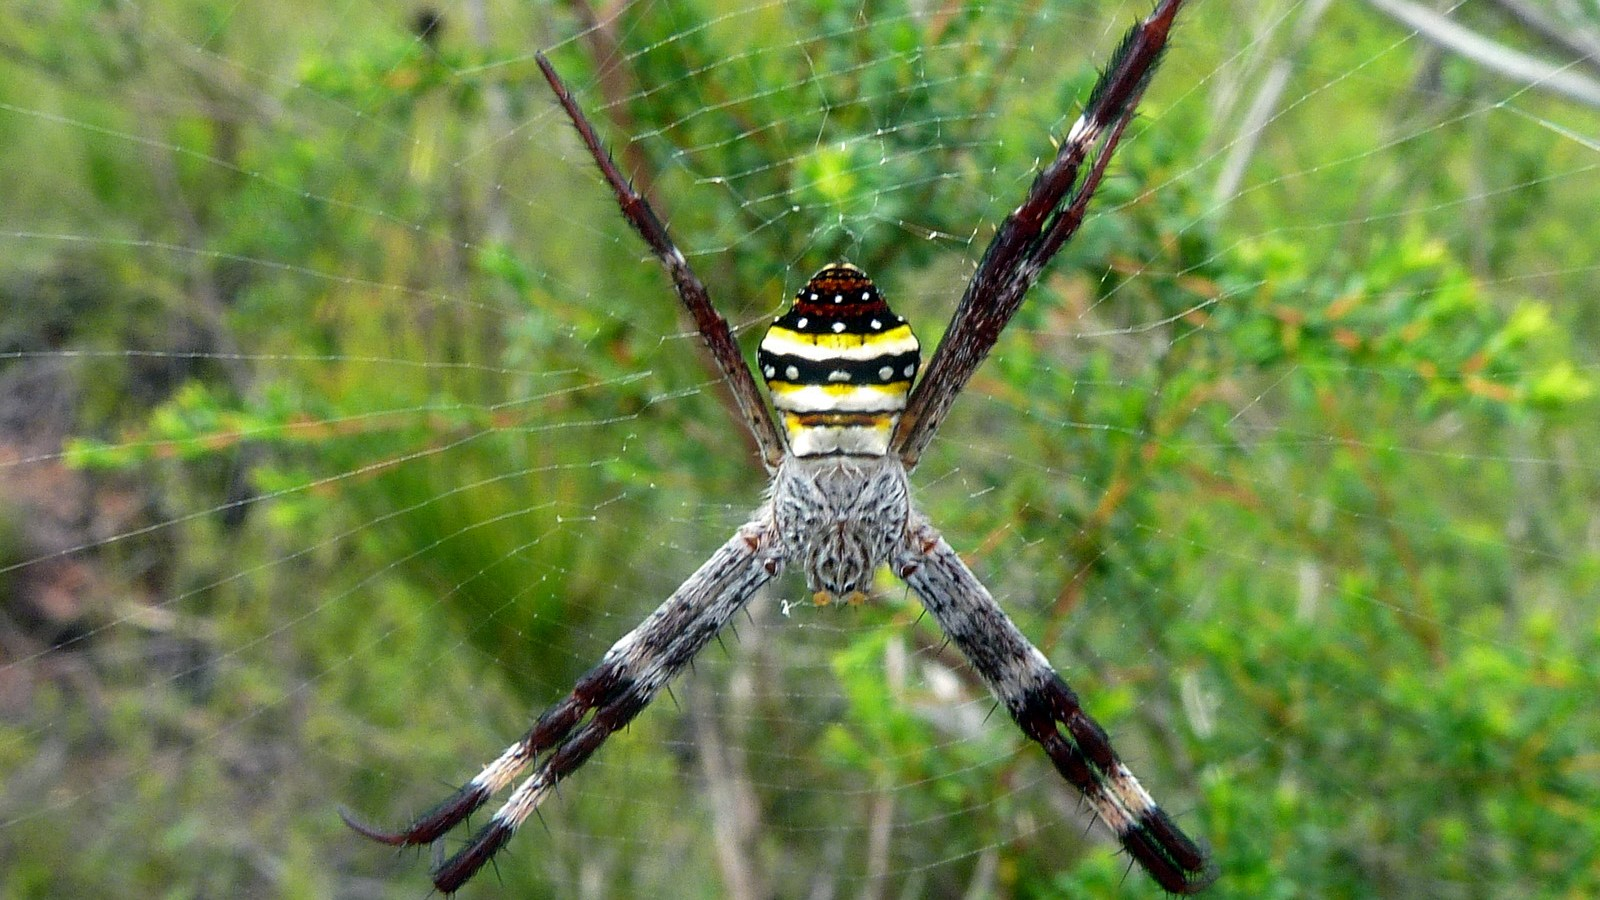 a photo of a southern cross spider.